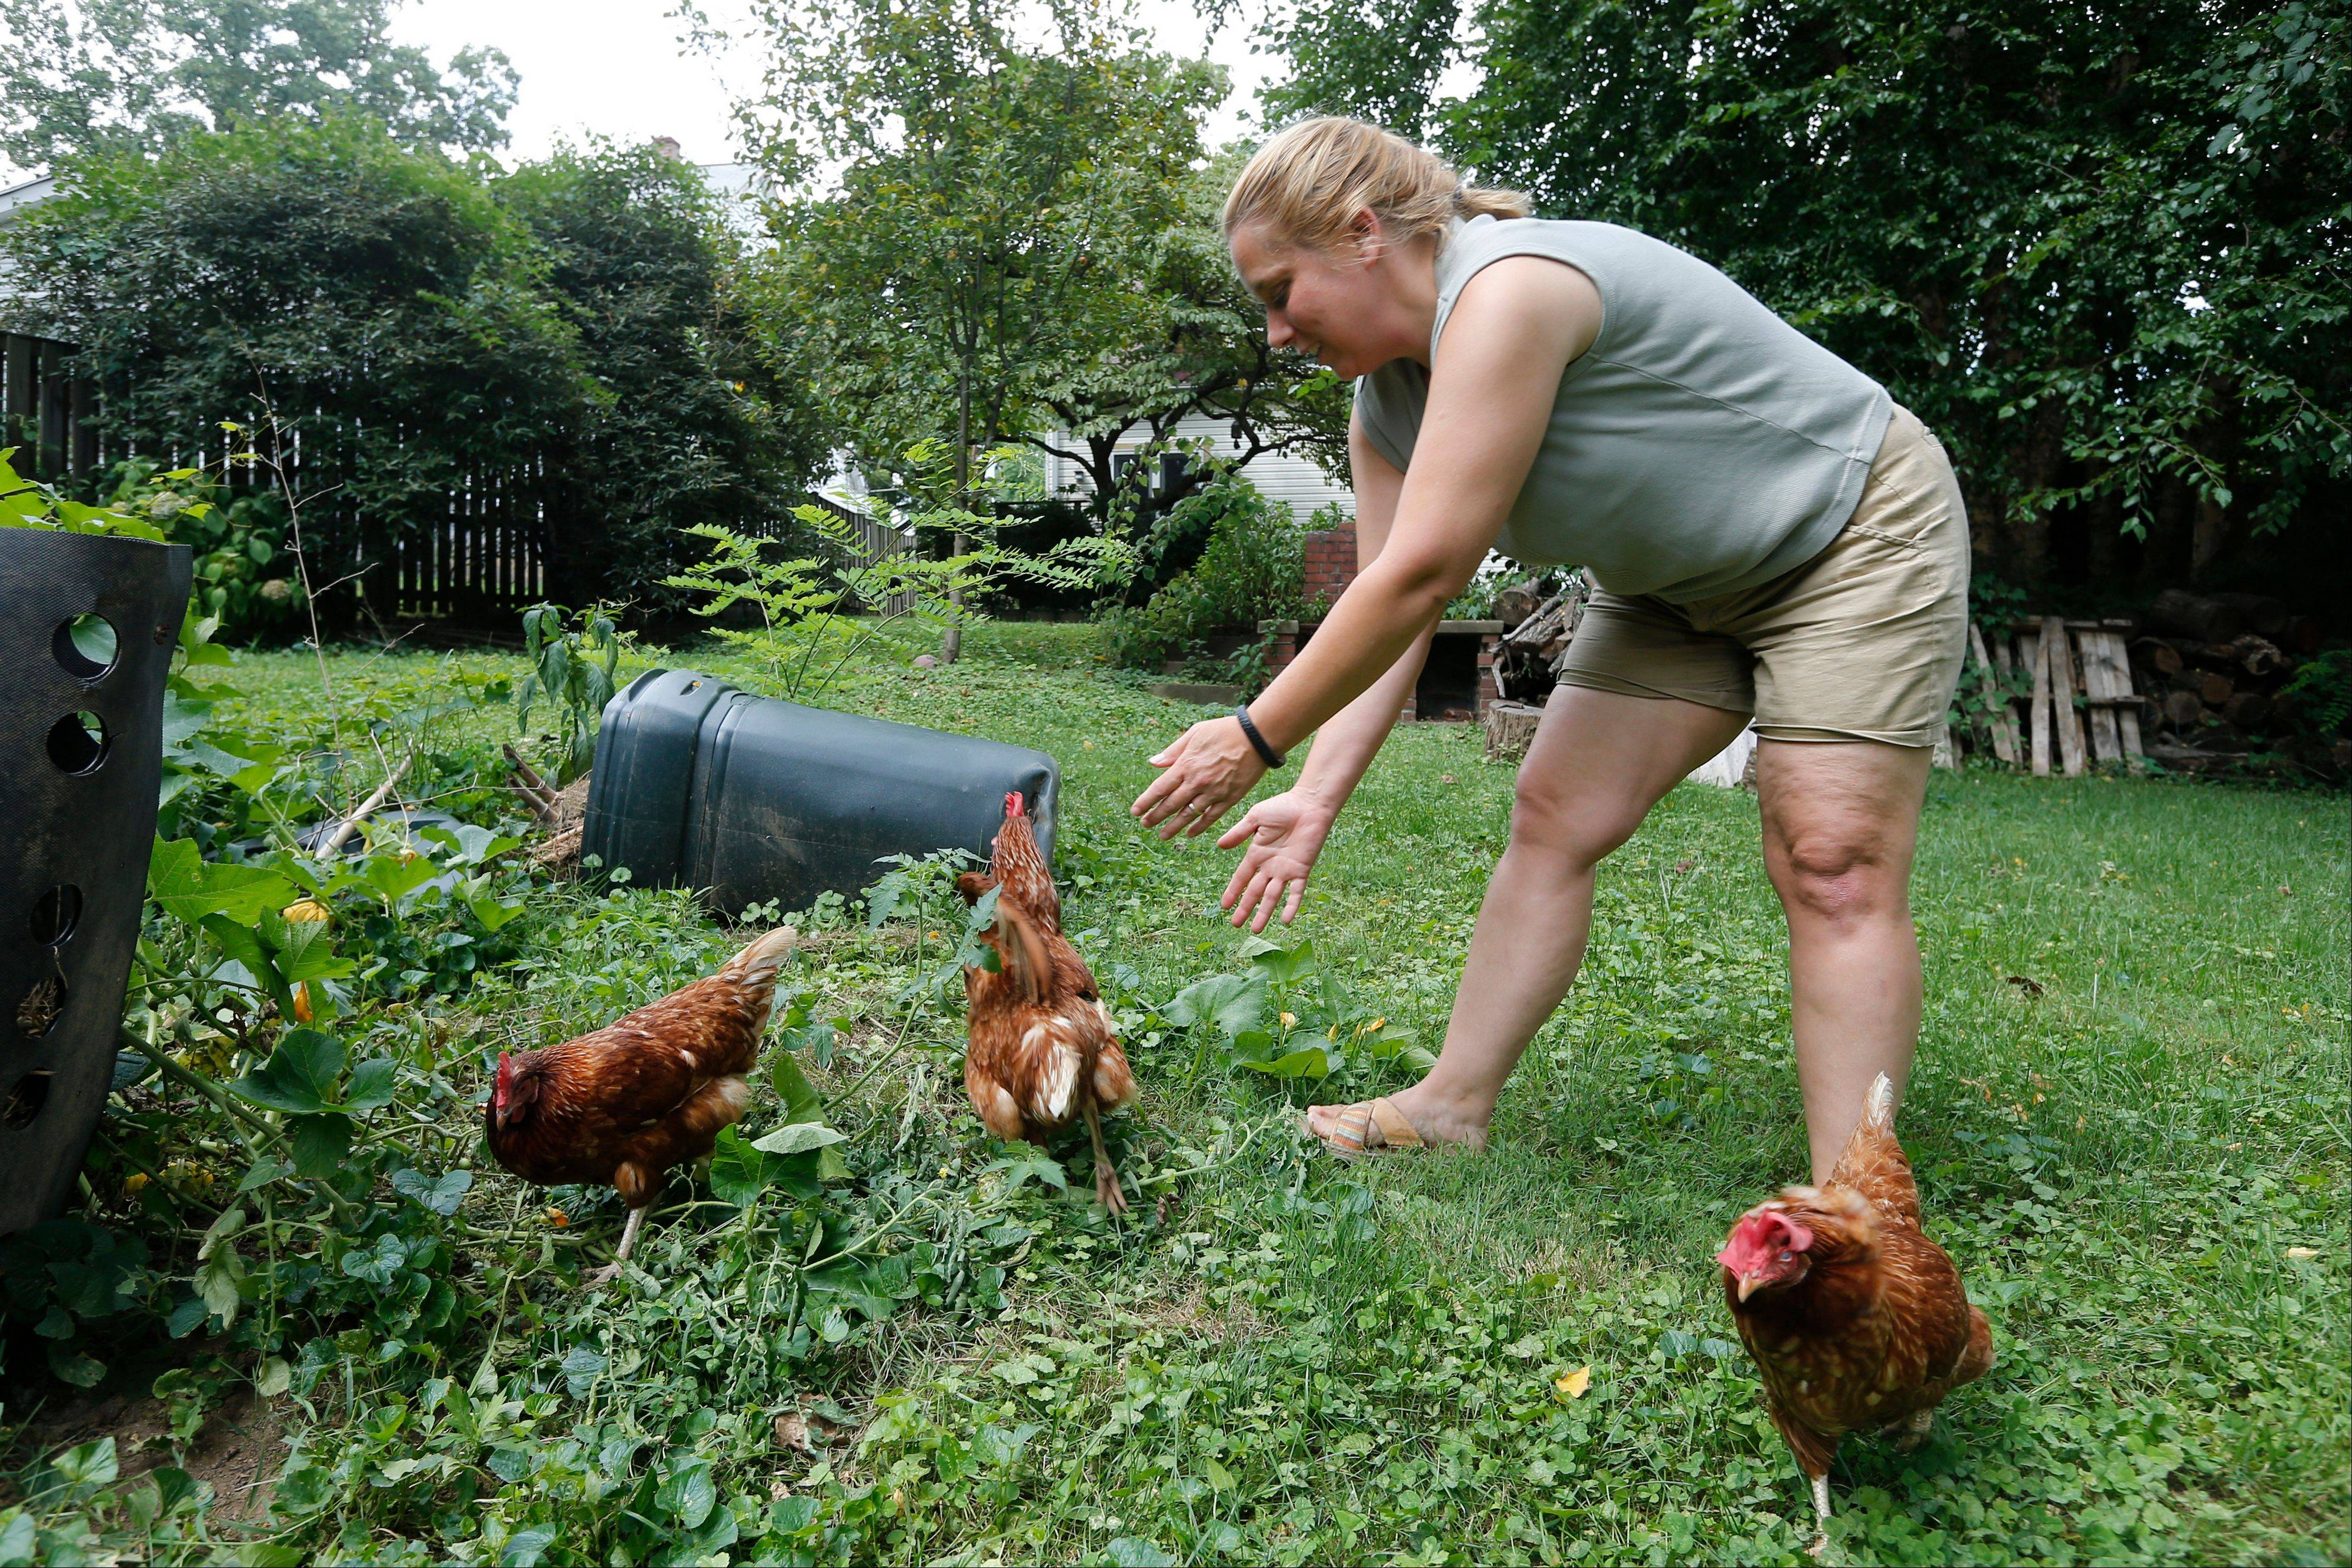 Sandy Schmidt, who owns a portable chicken coop, rounds up her chickens at her home in Silver Spring, Md.